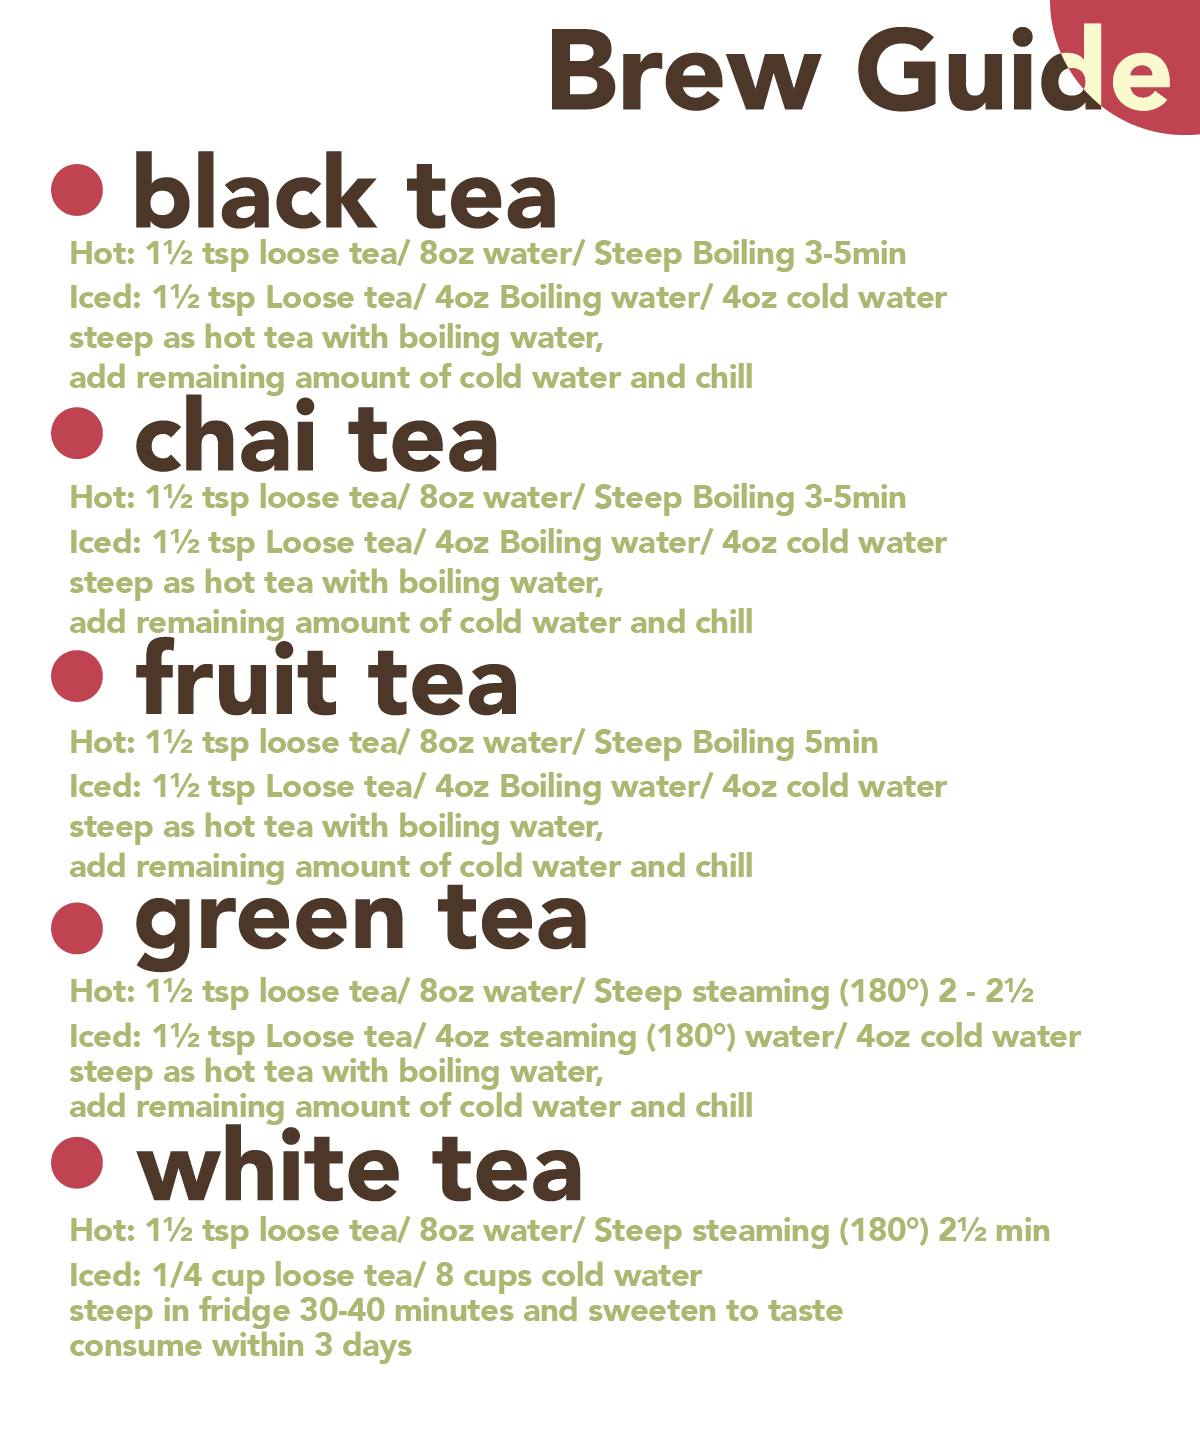 Brew Guide For Hackberry Tea: Gourmet Loose-Leaf Teas